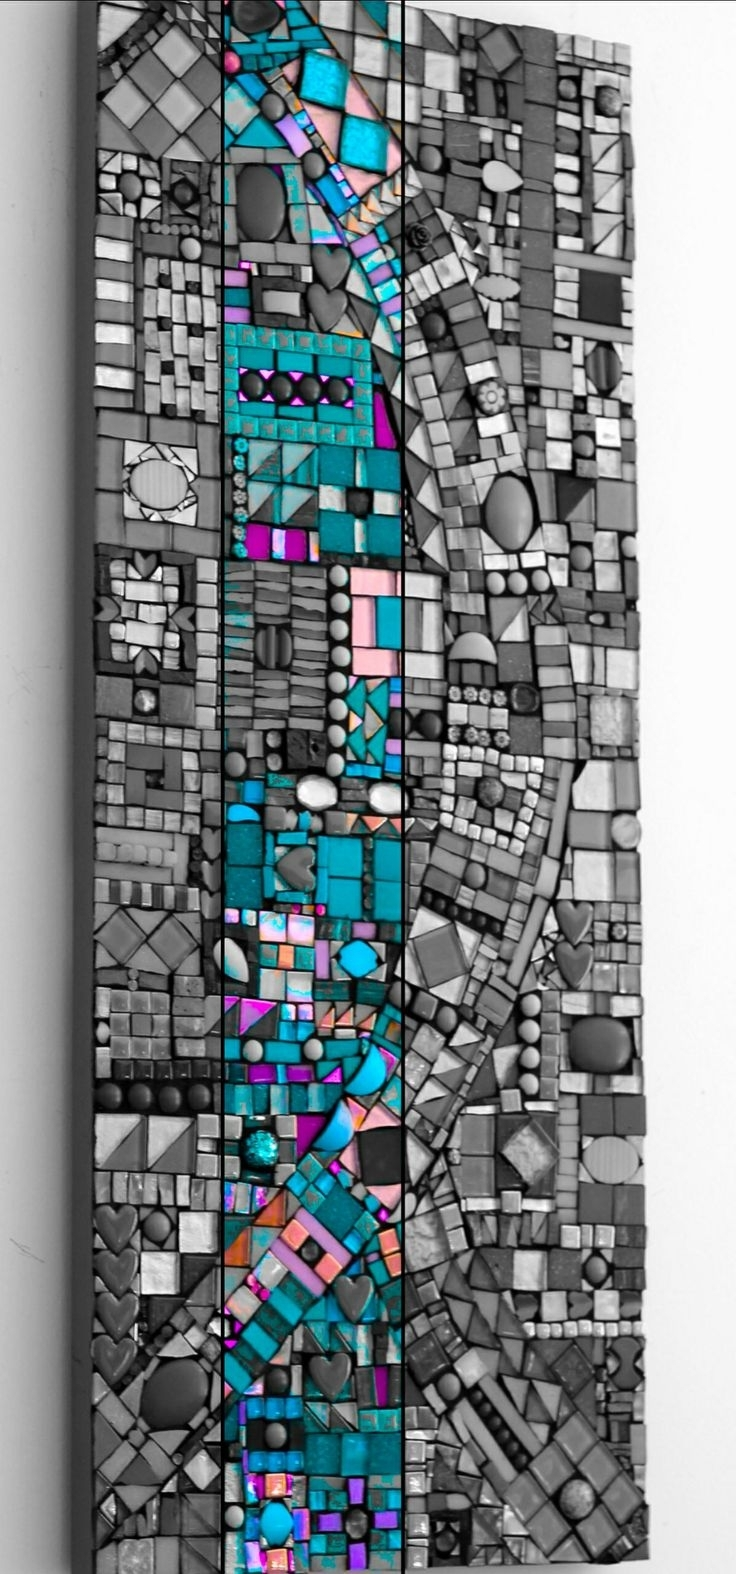 1052 Best Mosaic Abstract Images On Pinterest | Mosaic Art, Mosaic Intended For 2018 Abstract Mosaic Art On Wall (View 1 of 20)